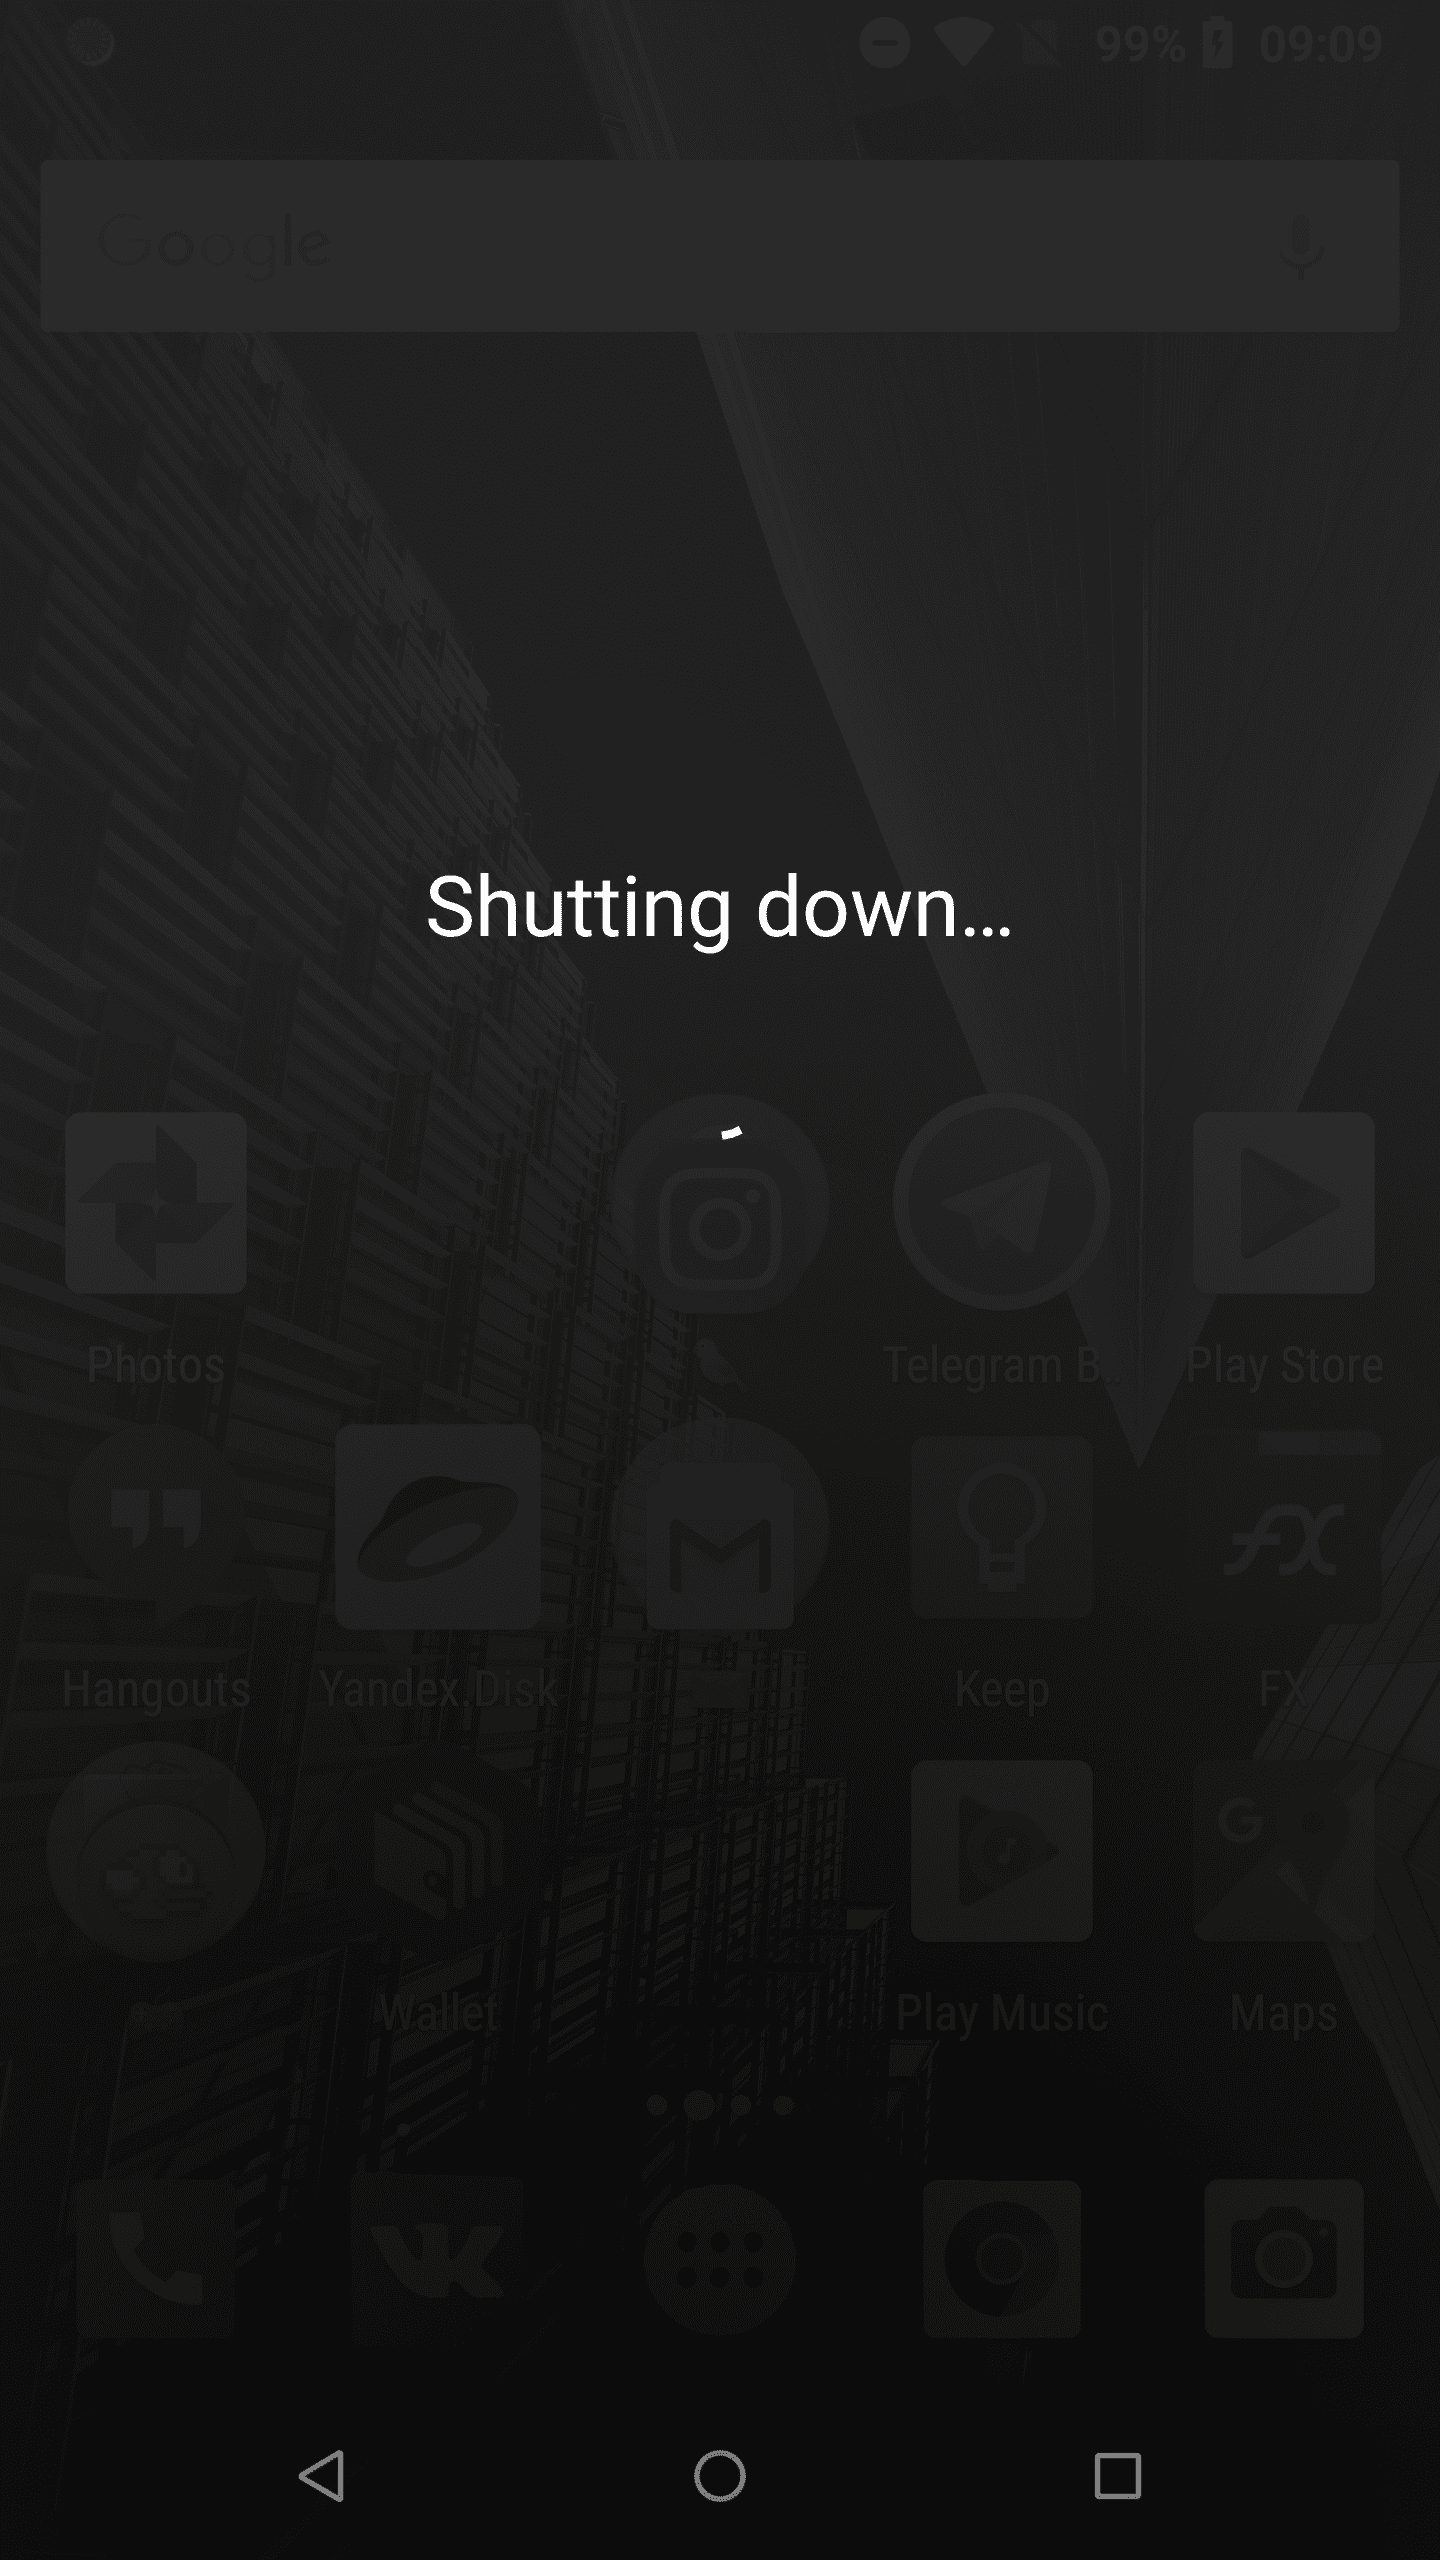 Why phone suddenly shut down